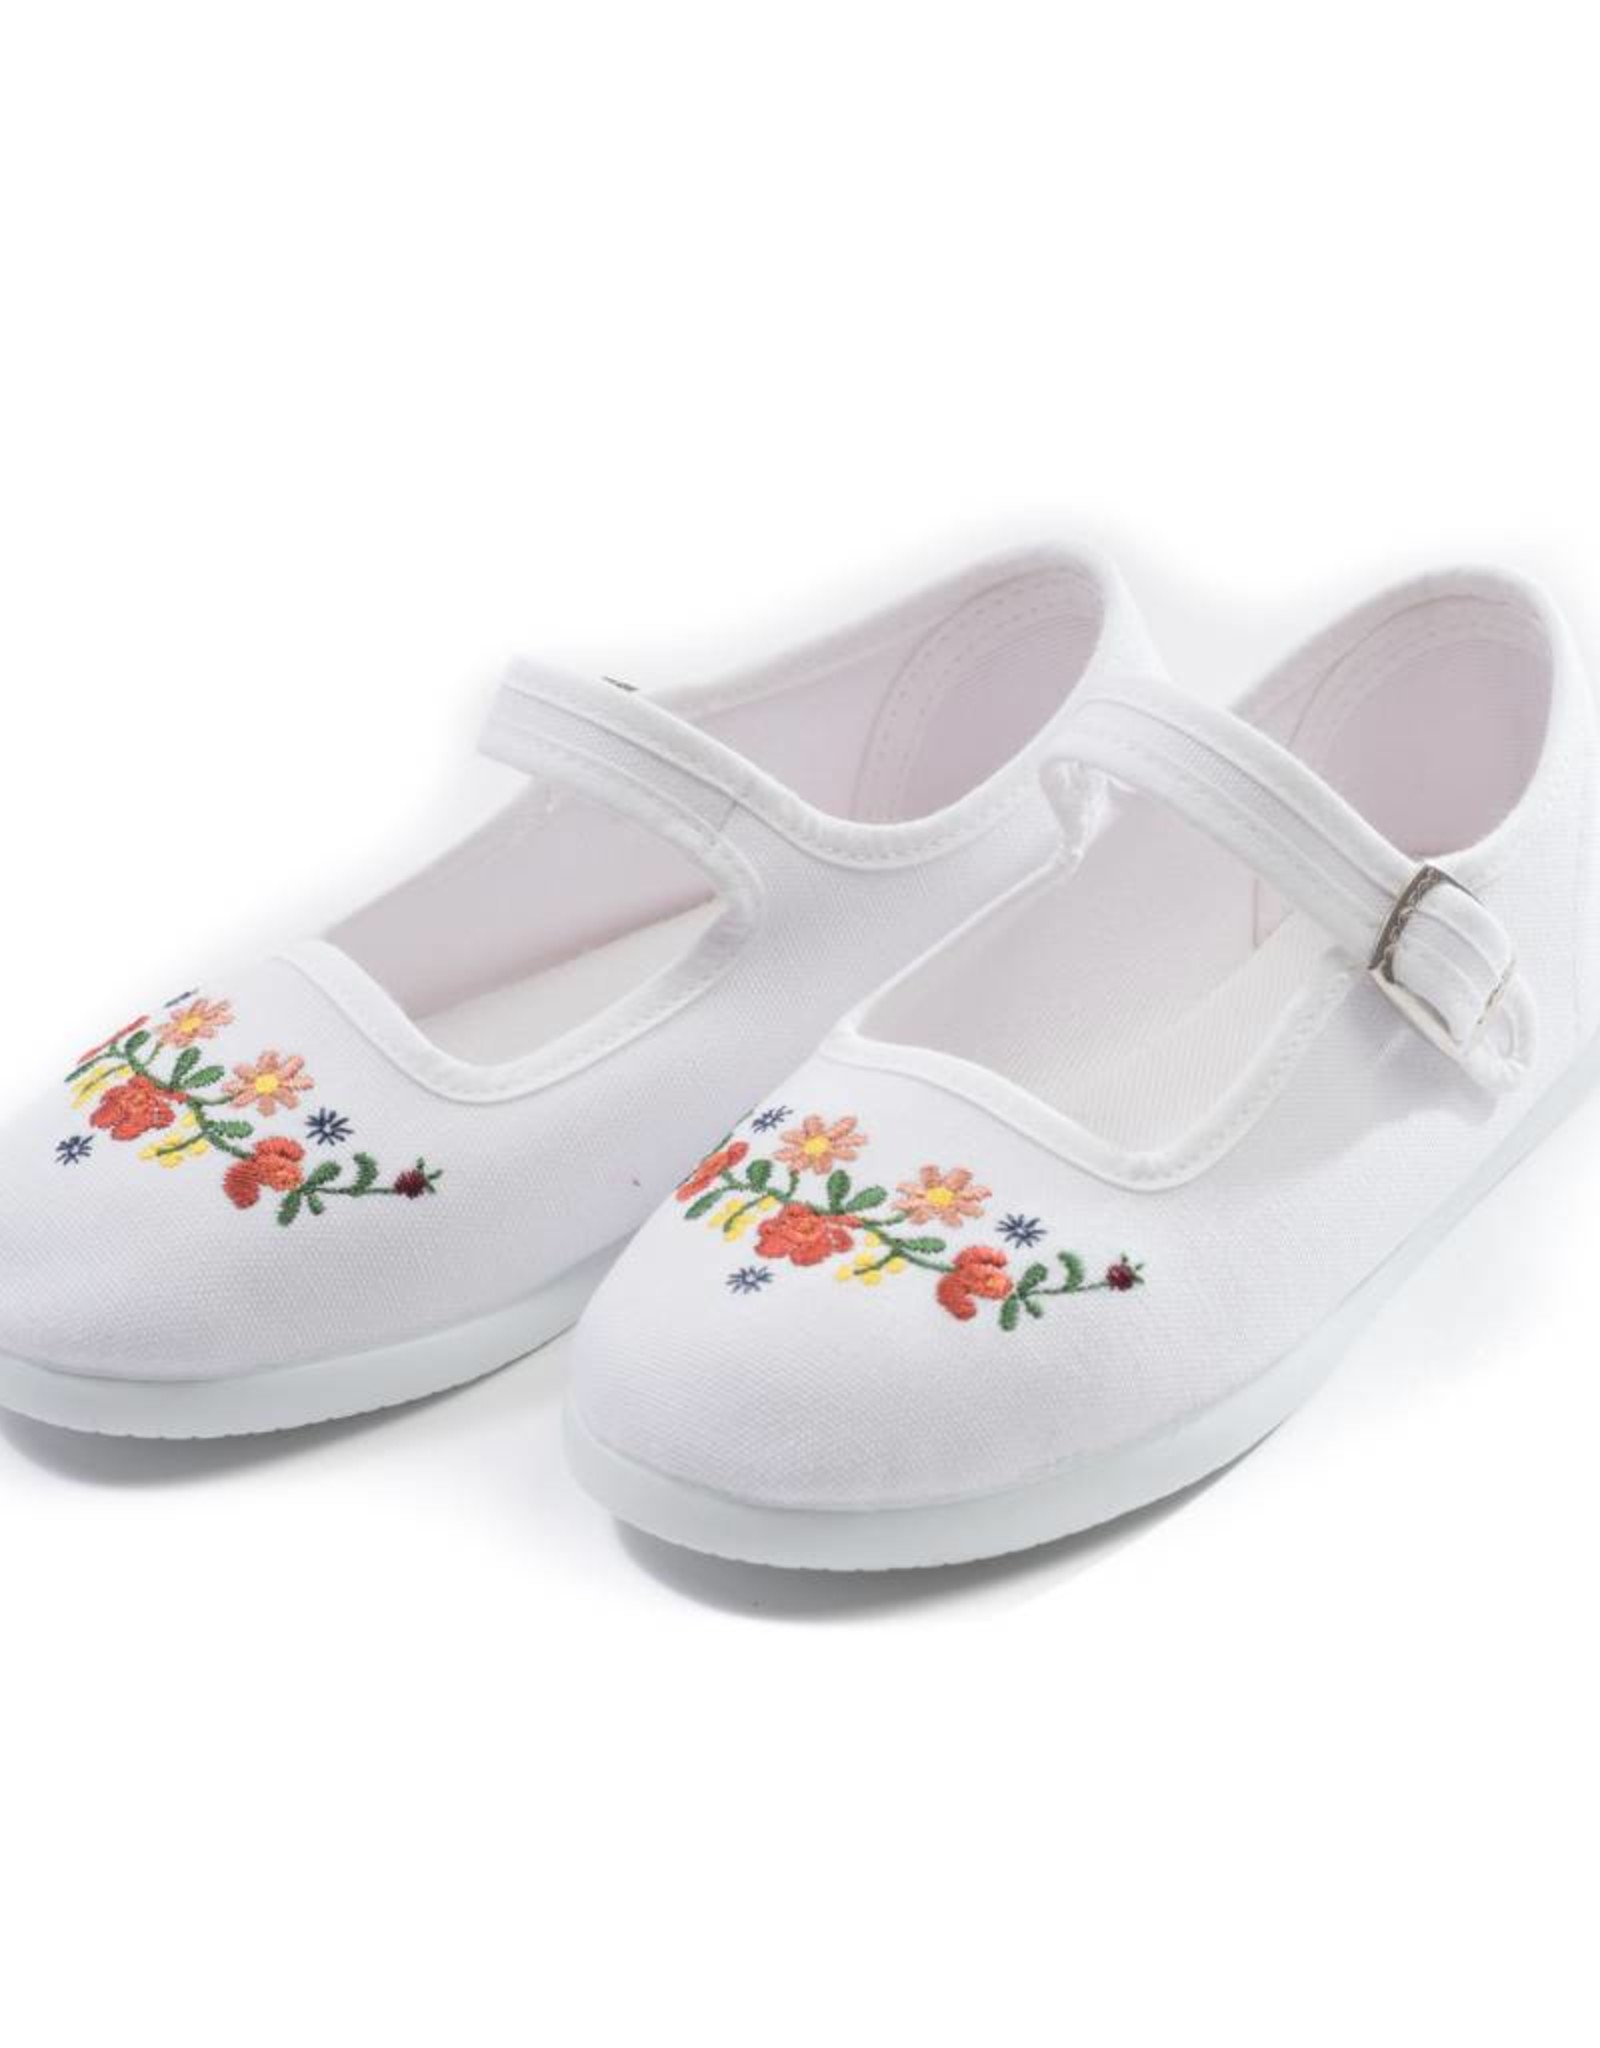 Embroidered shoes